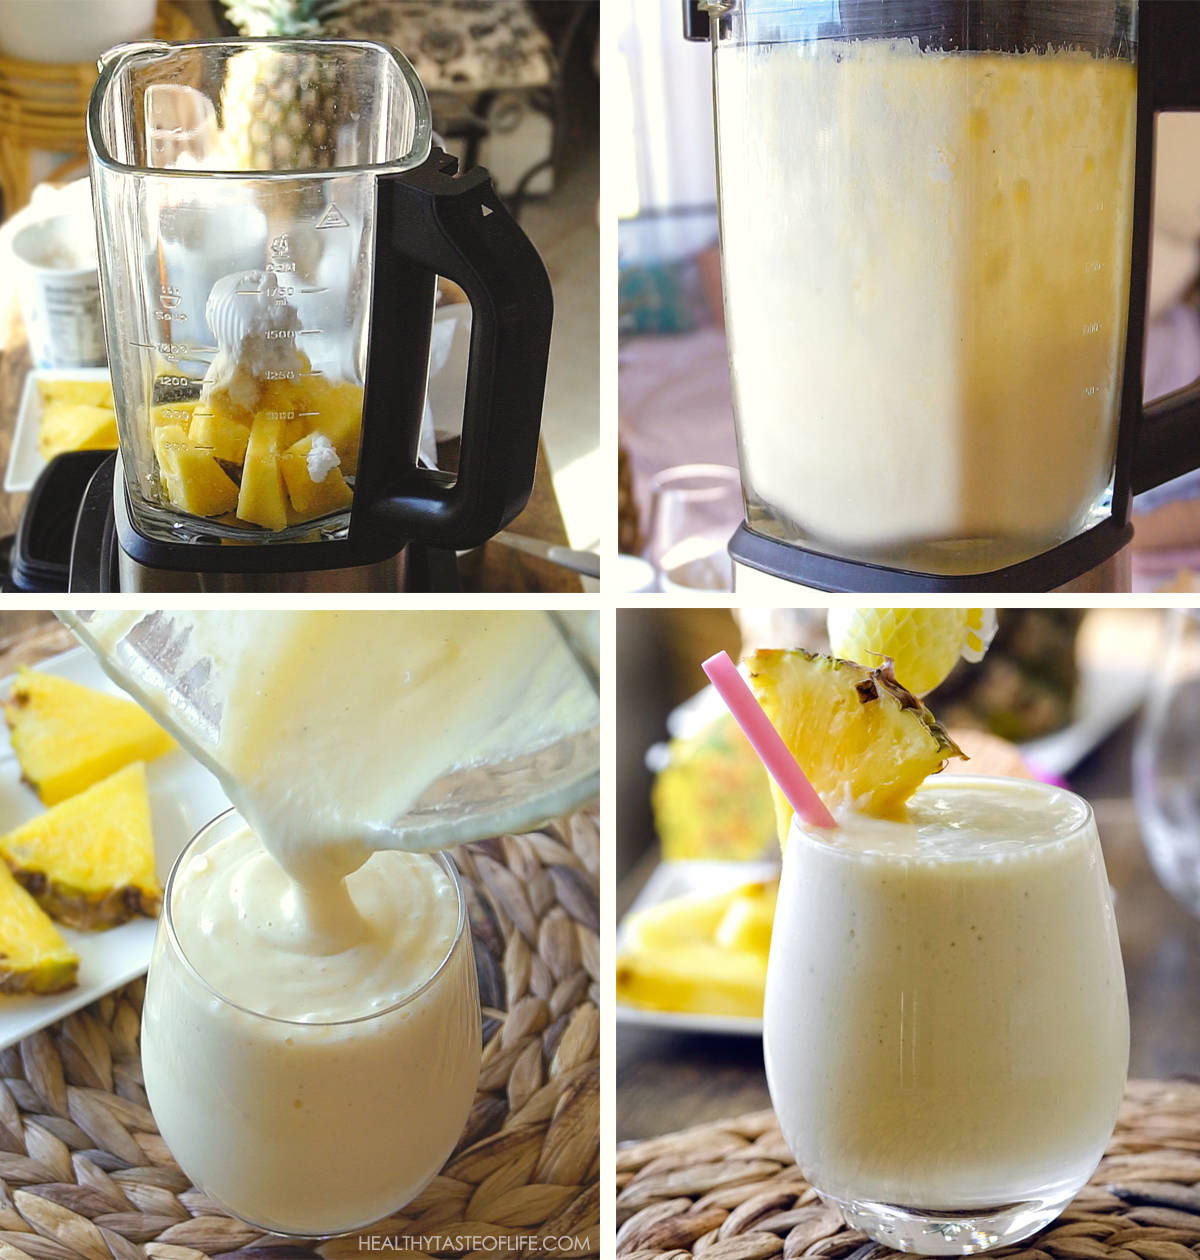 Process shots of pineapple milkshake - how to make pineapple milkshake with coconut cream and ice cream in a blender step by step.